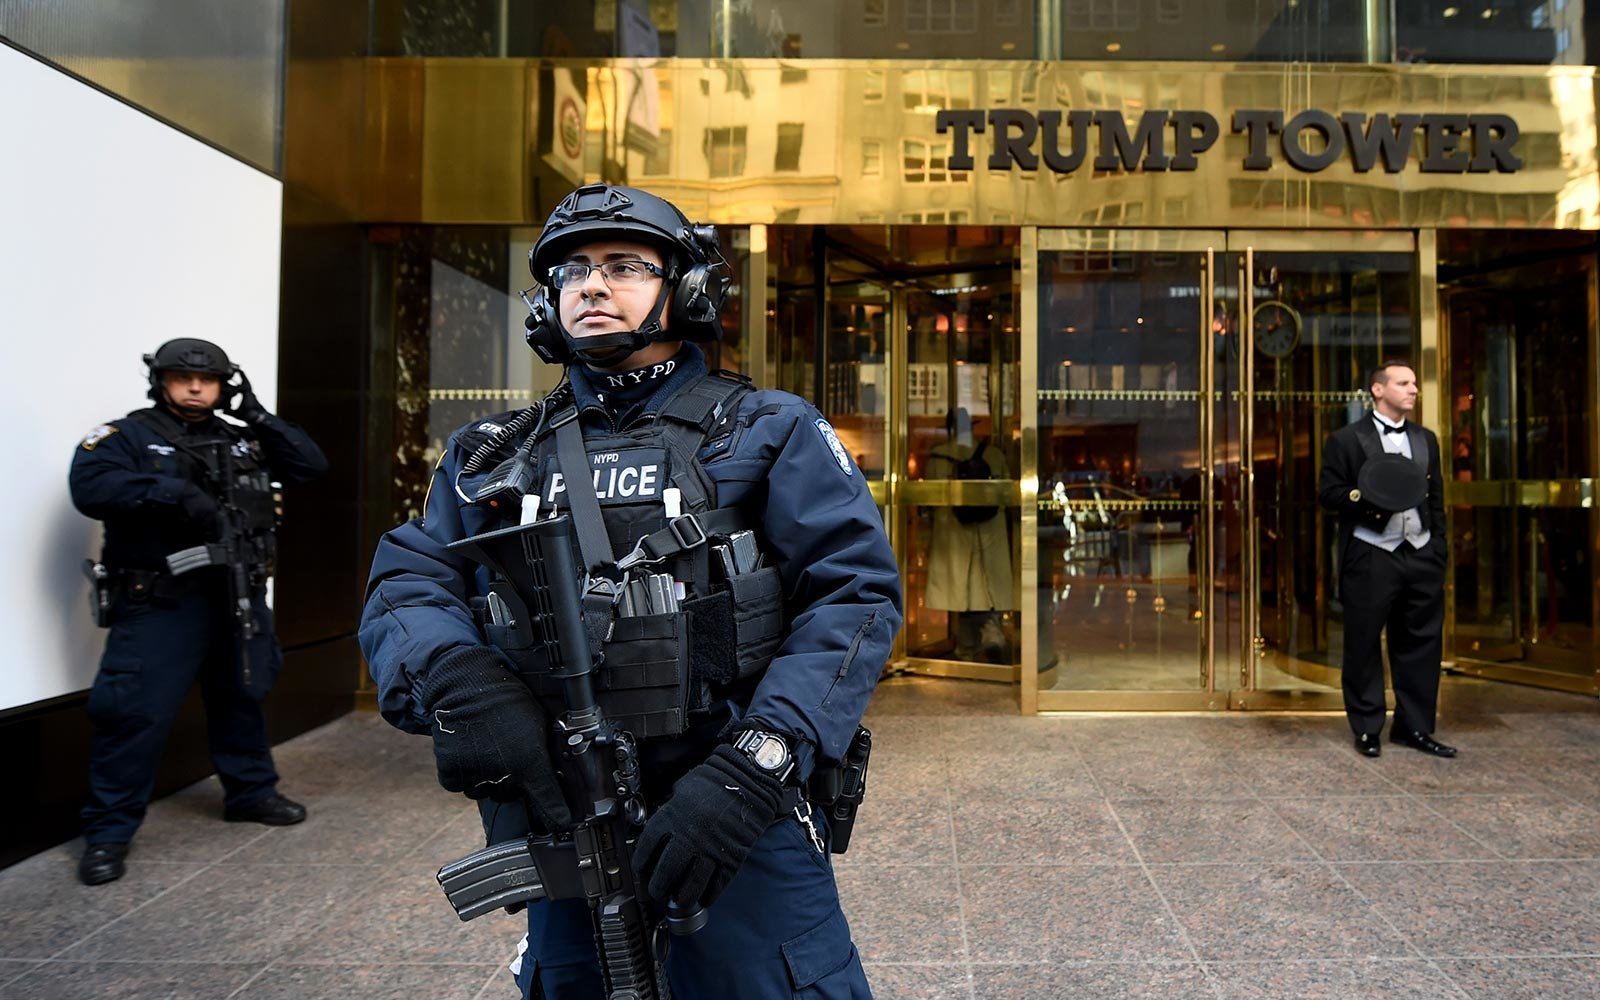 New York City Will Spend $1 Million a Day to Protect Donald Trump and His Family